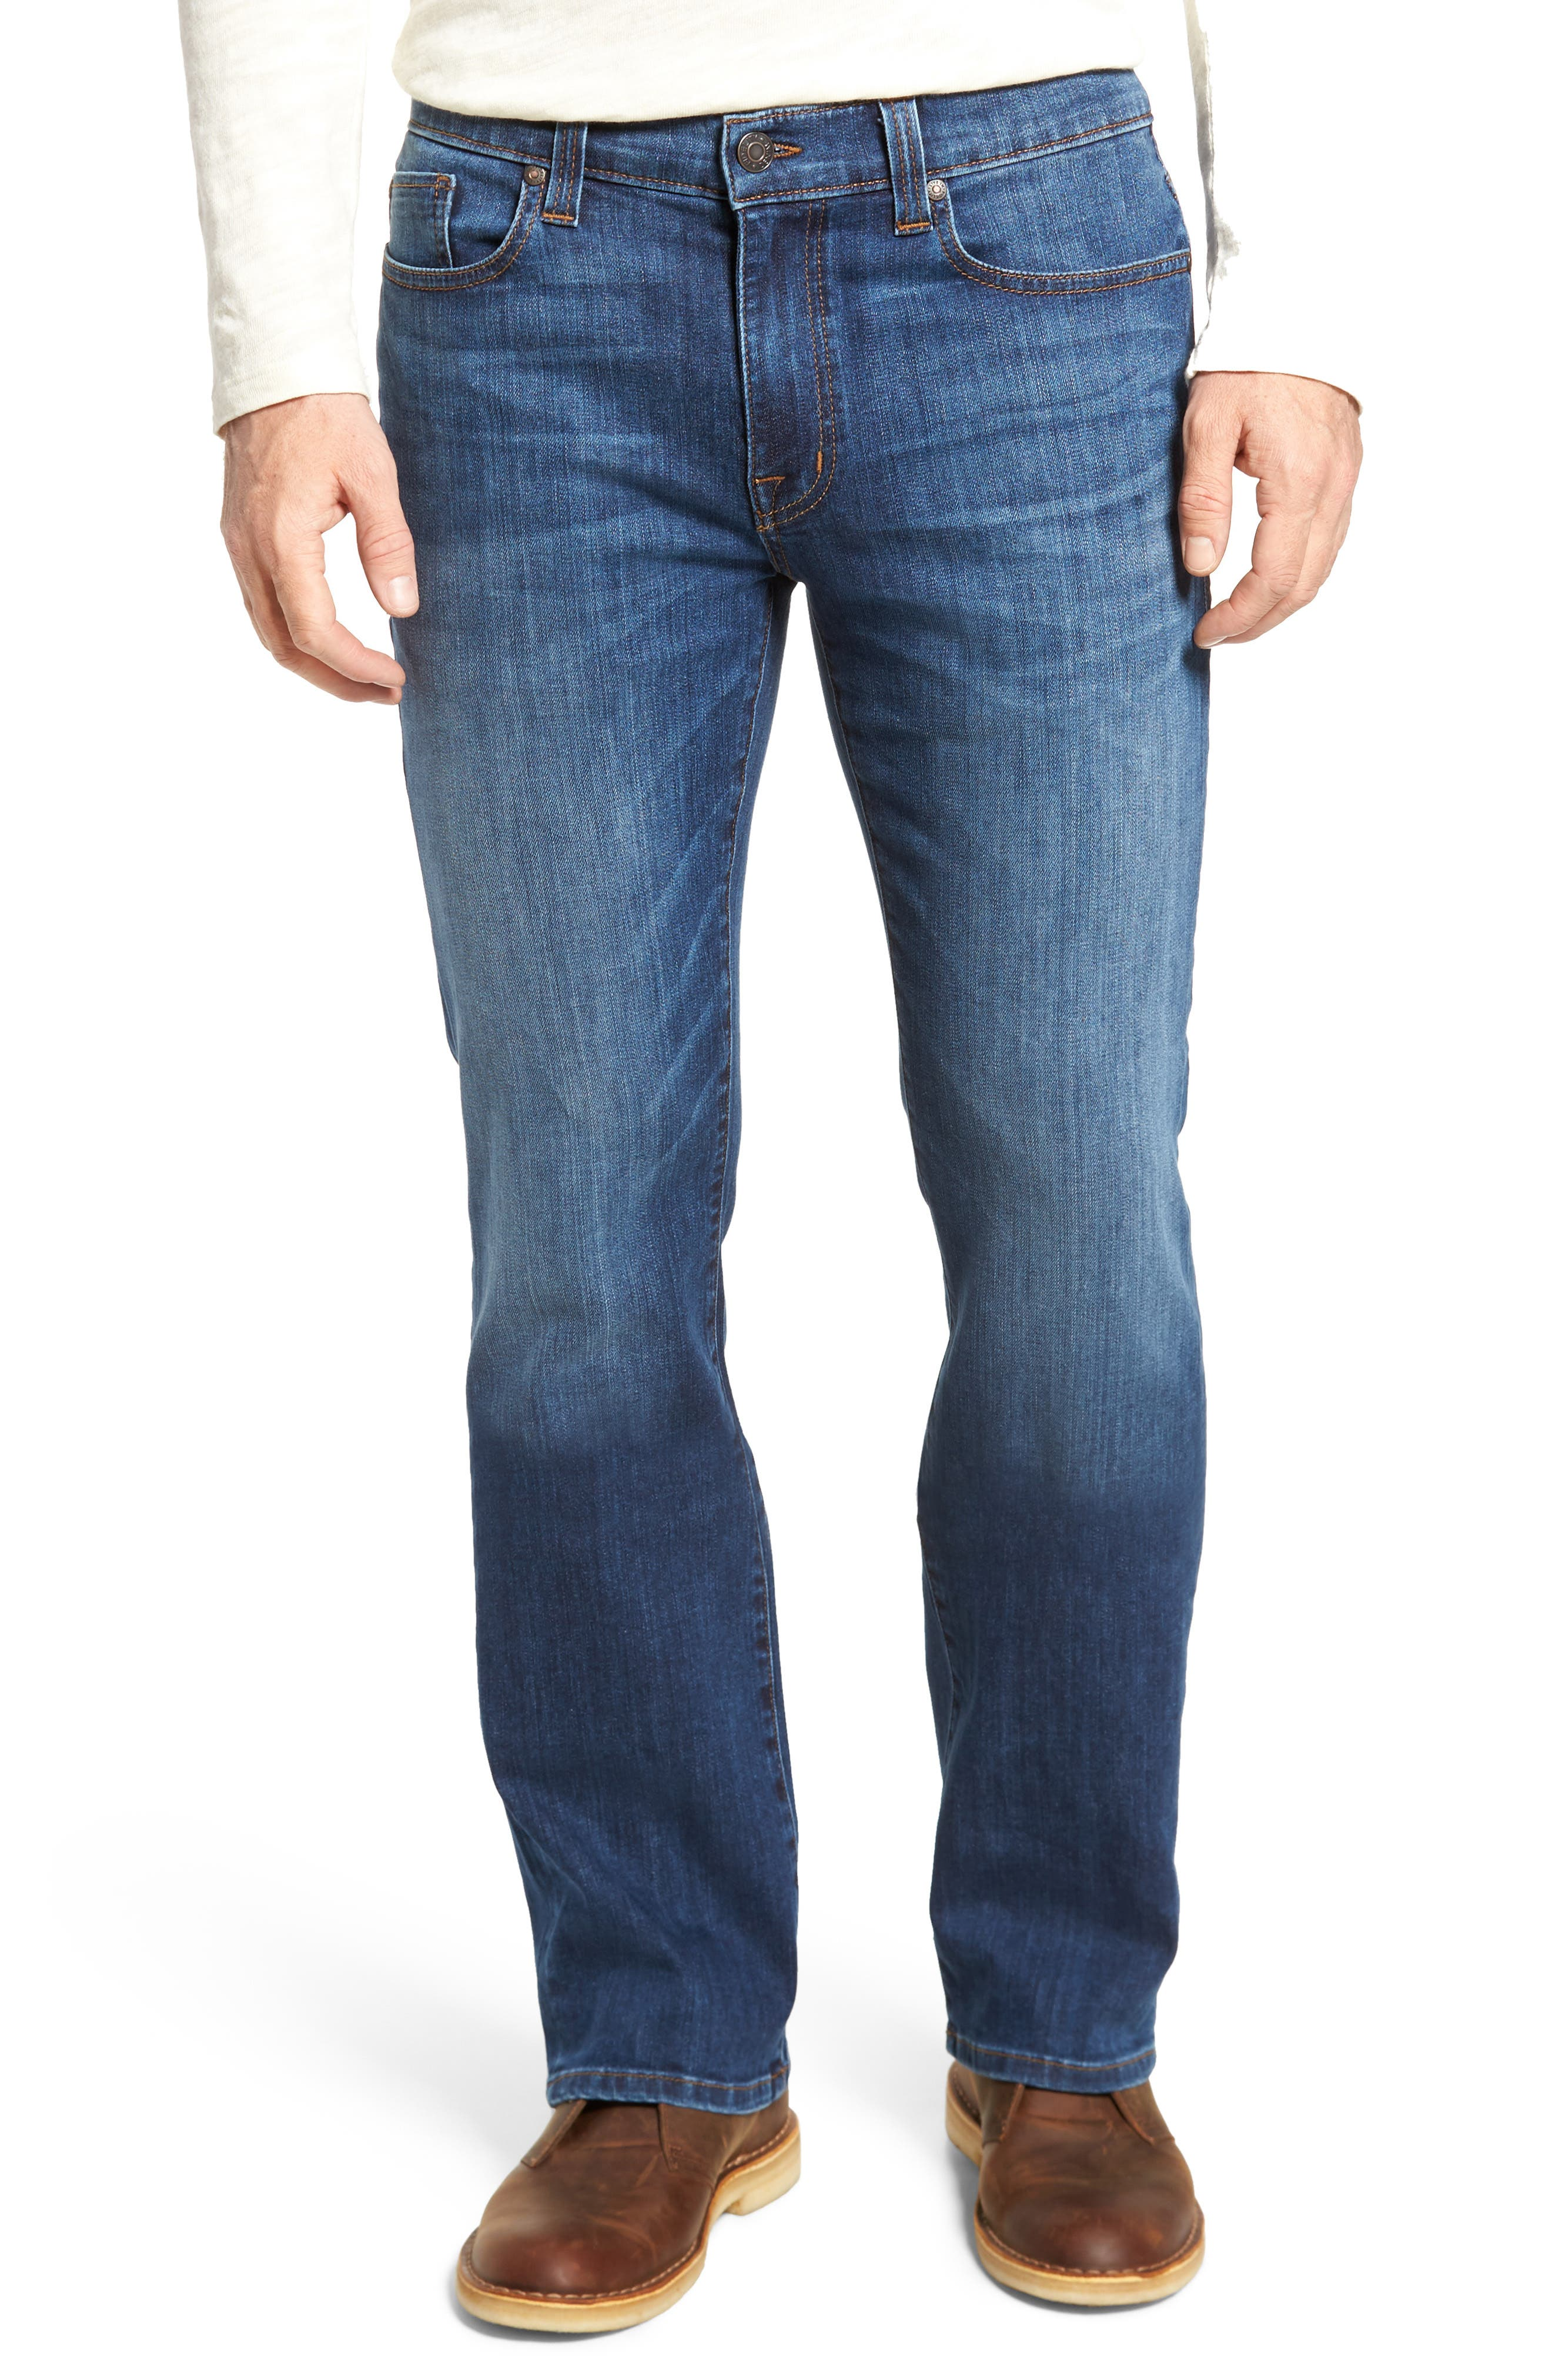 5011 Relaxed Fit Jeans,                         Main,                         color, Liverpool